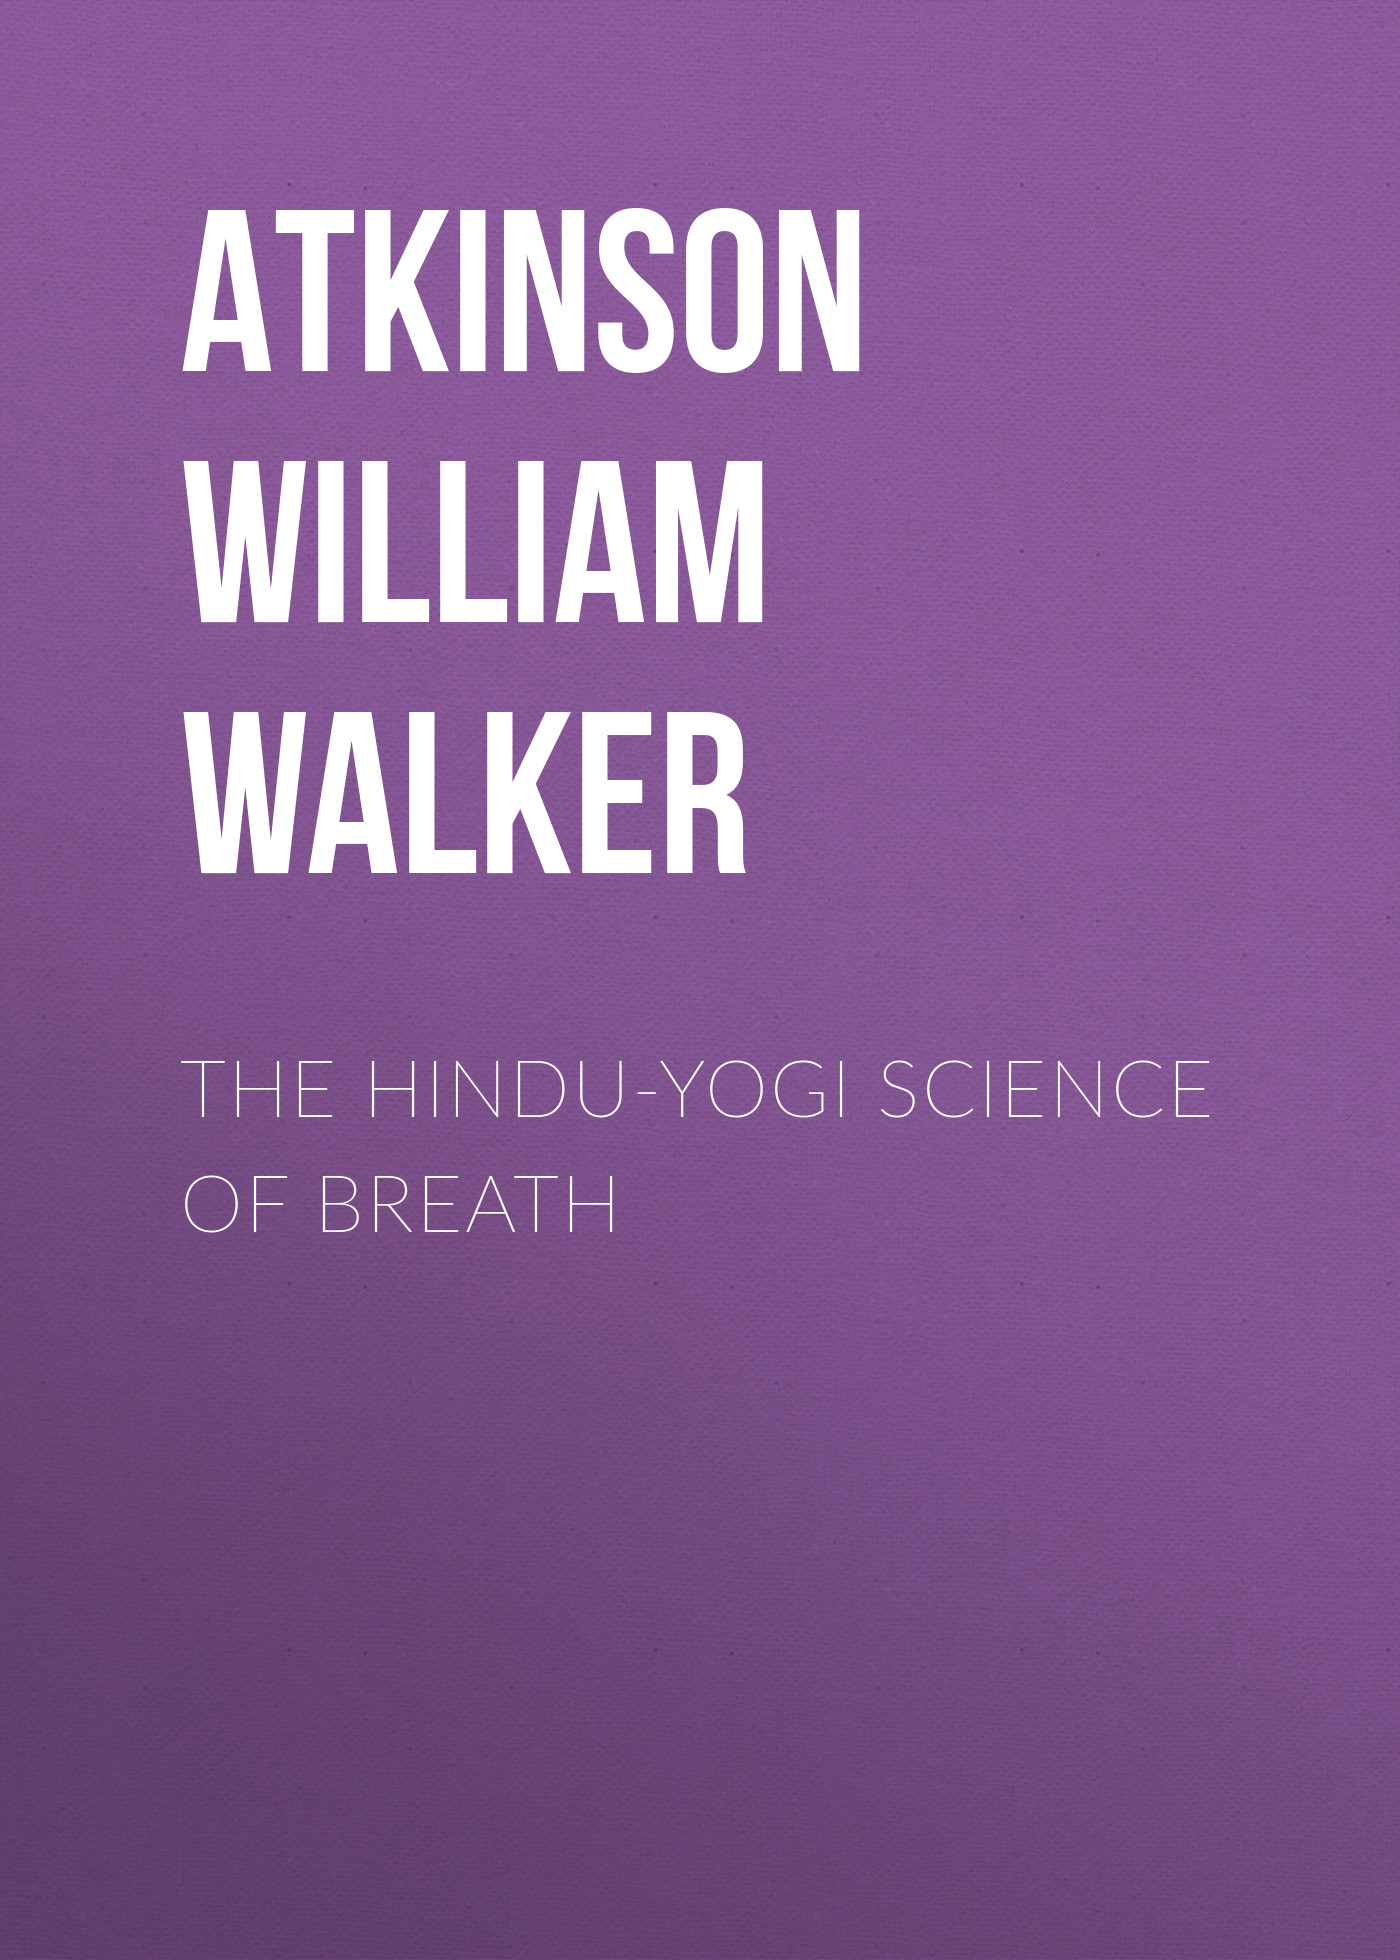 Atkinson William Walker The Hindu-Yogi Science Of Breath все цены